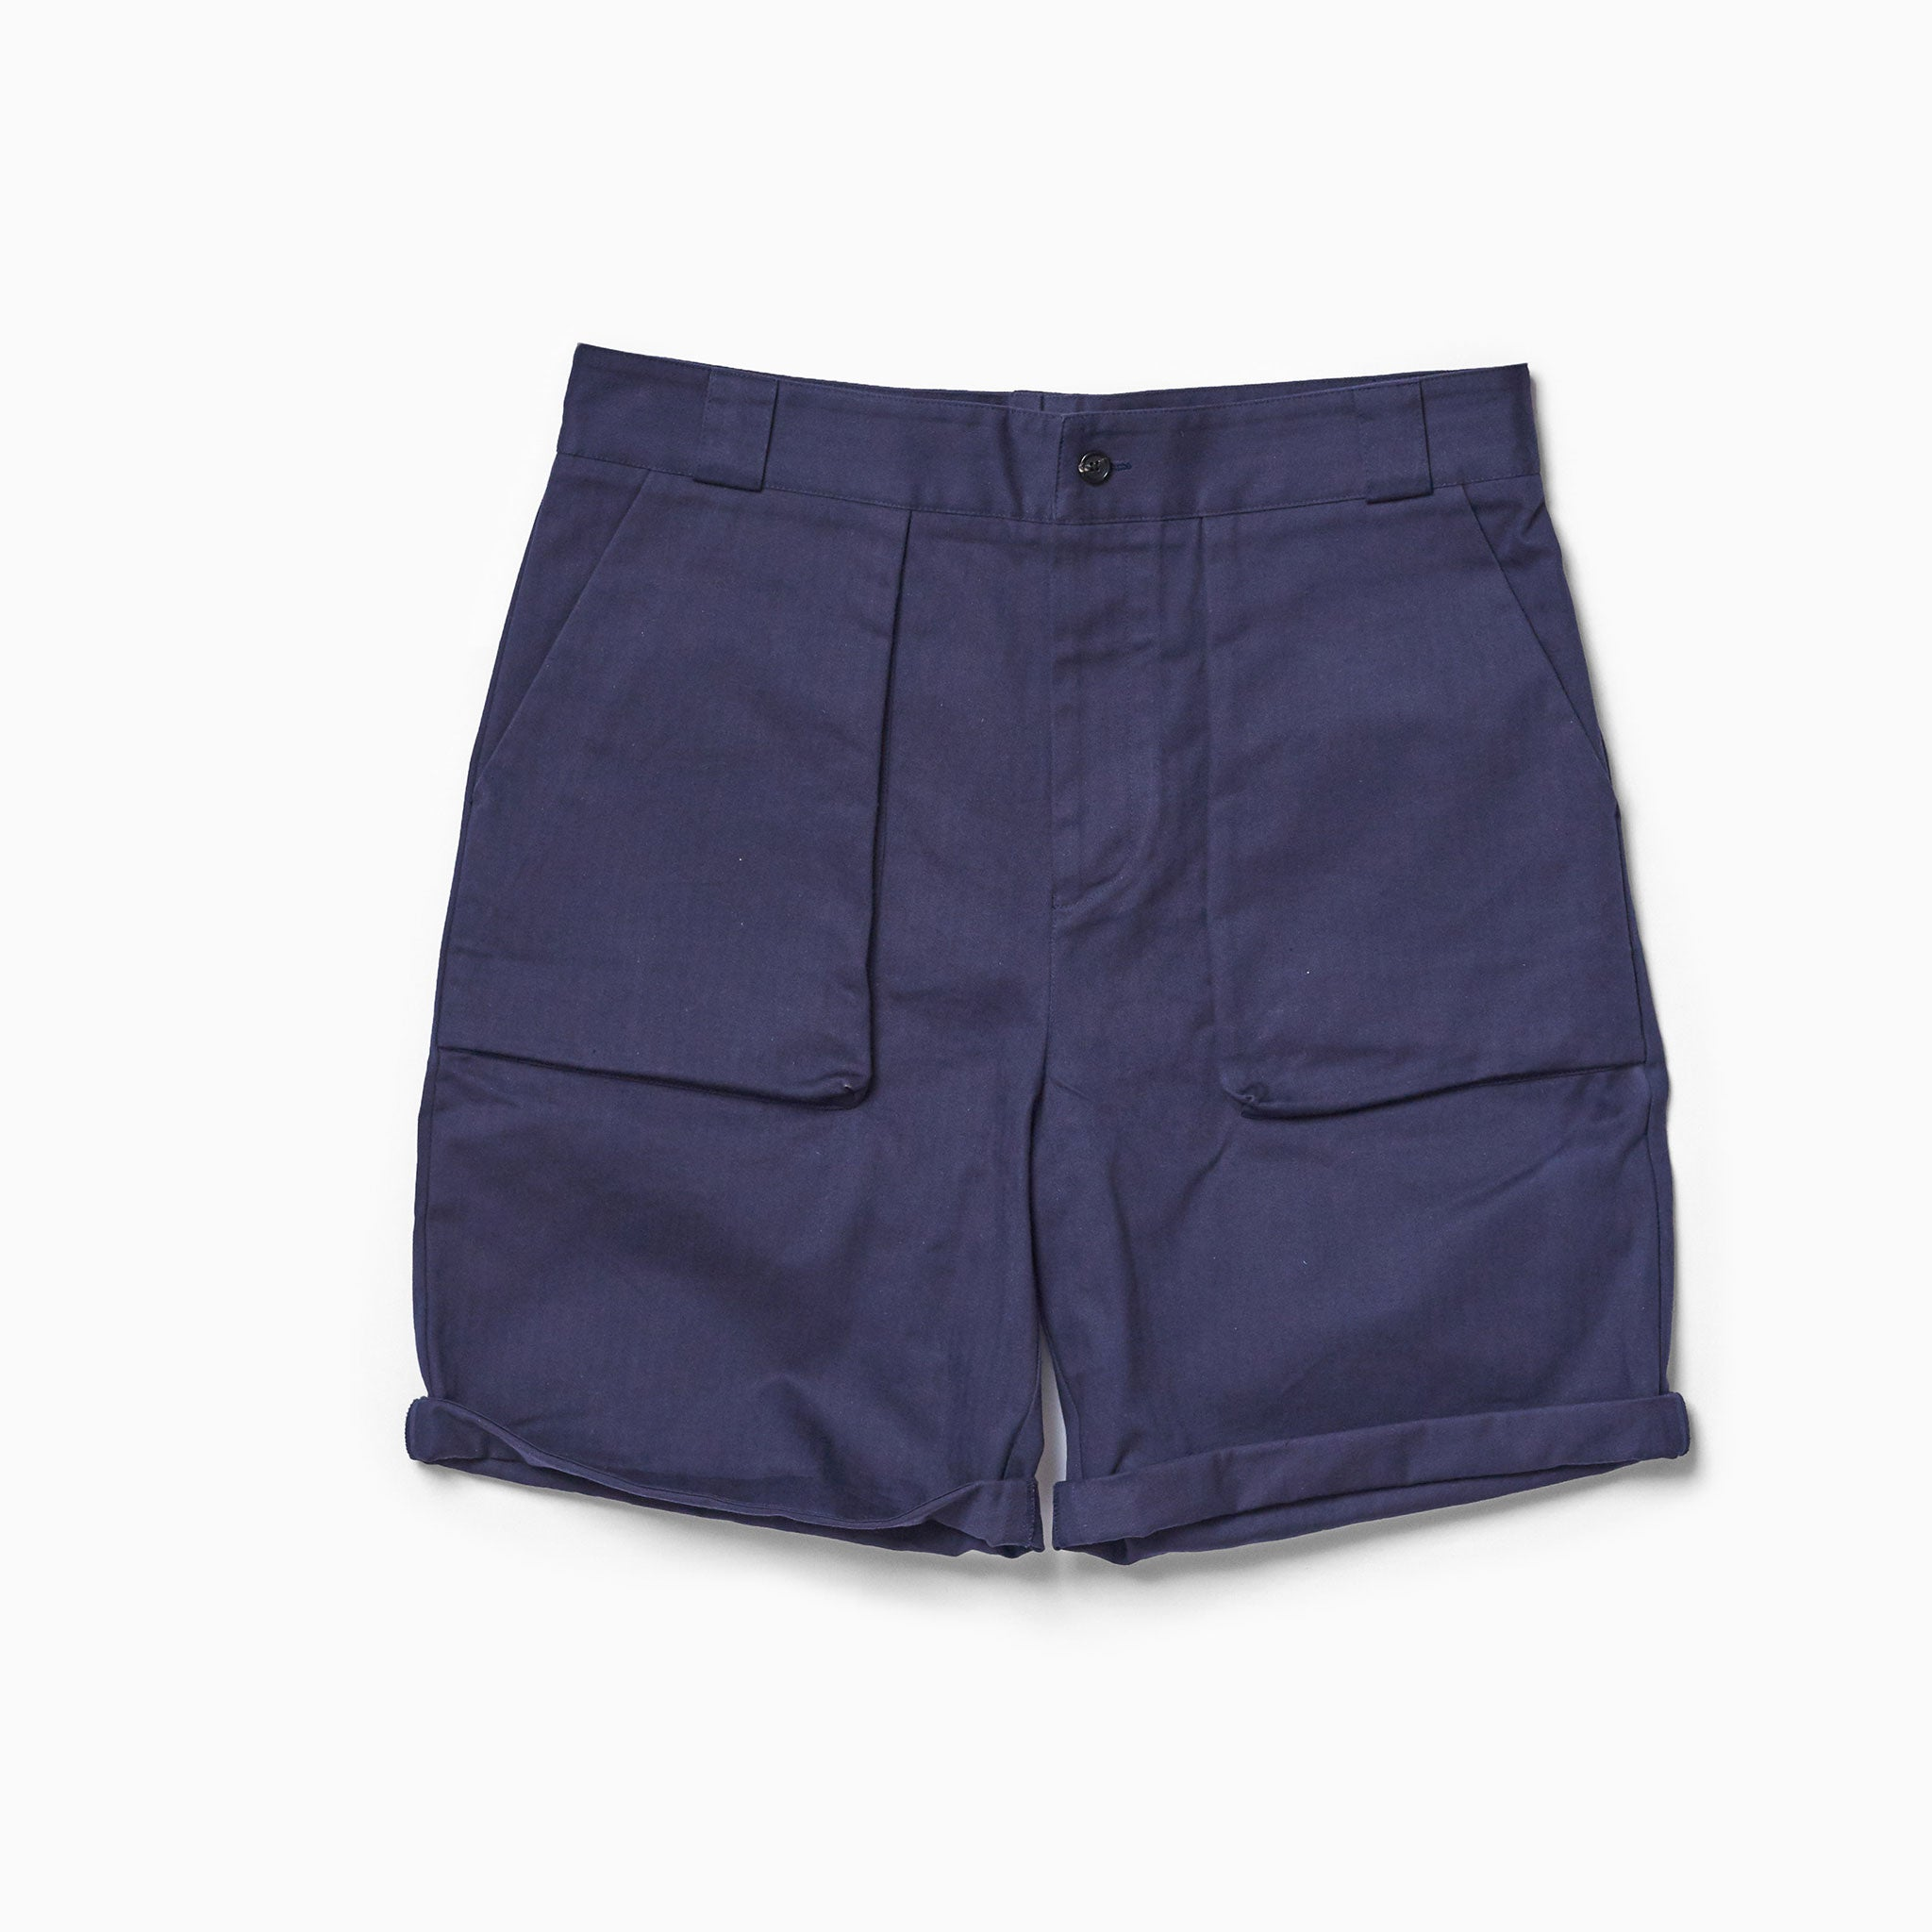 Navy Herringbone Walking Shorts